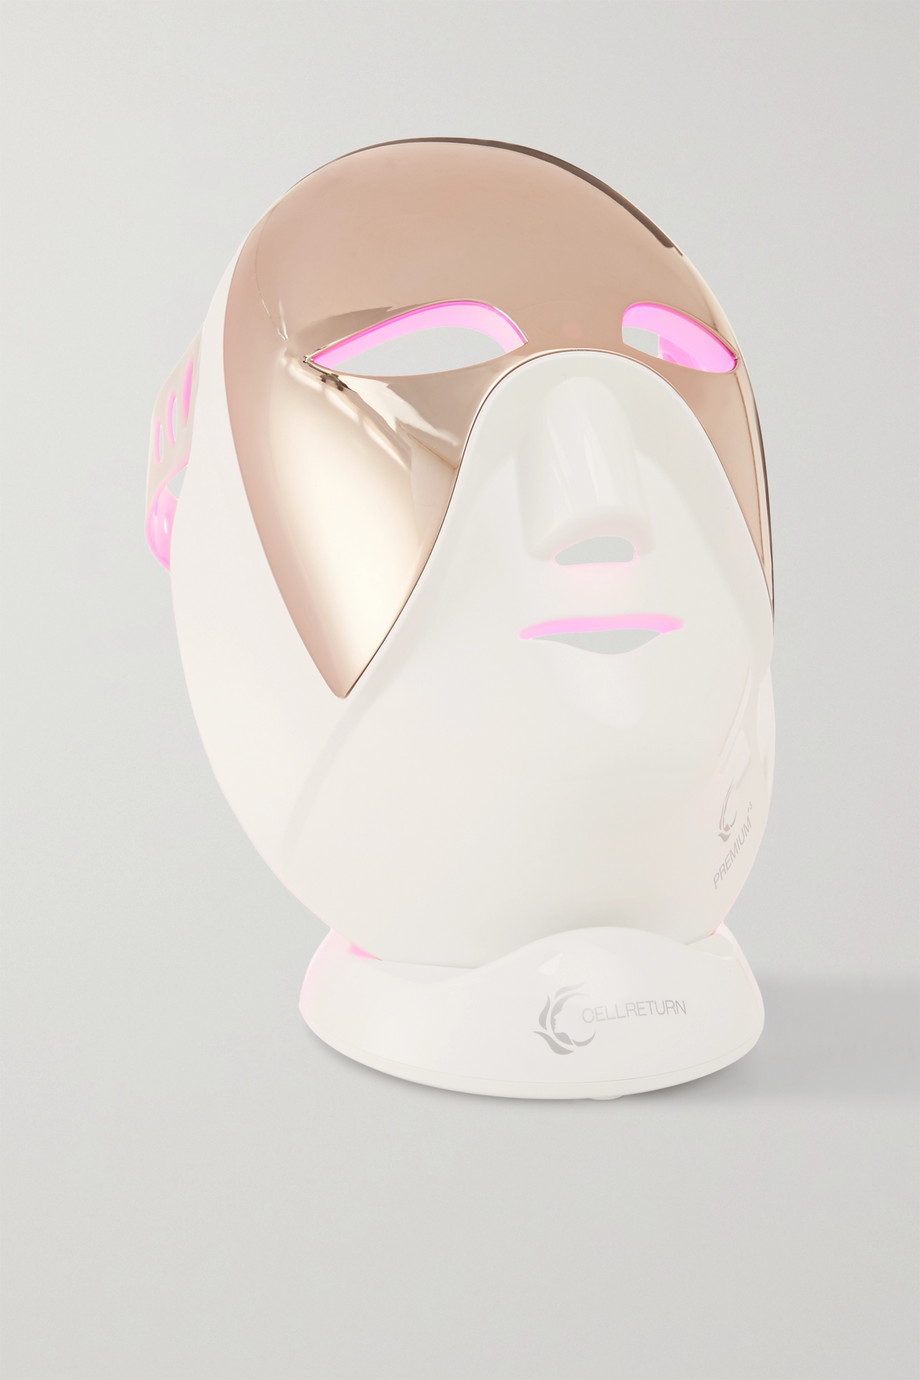 CELLRETURN Cellreturn Premium LED Mask